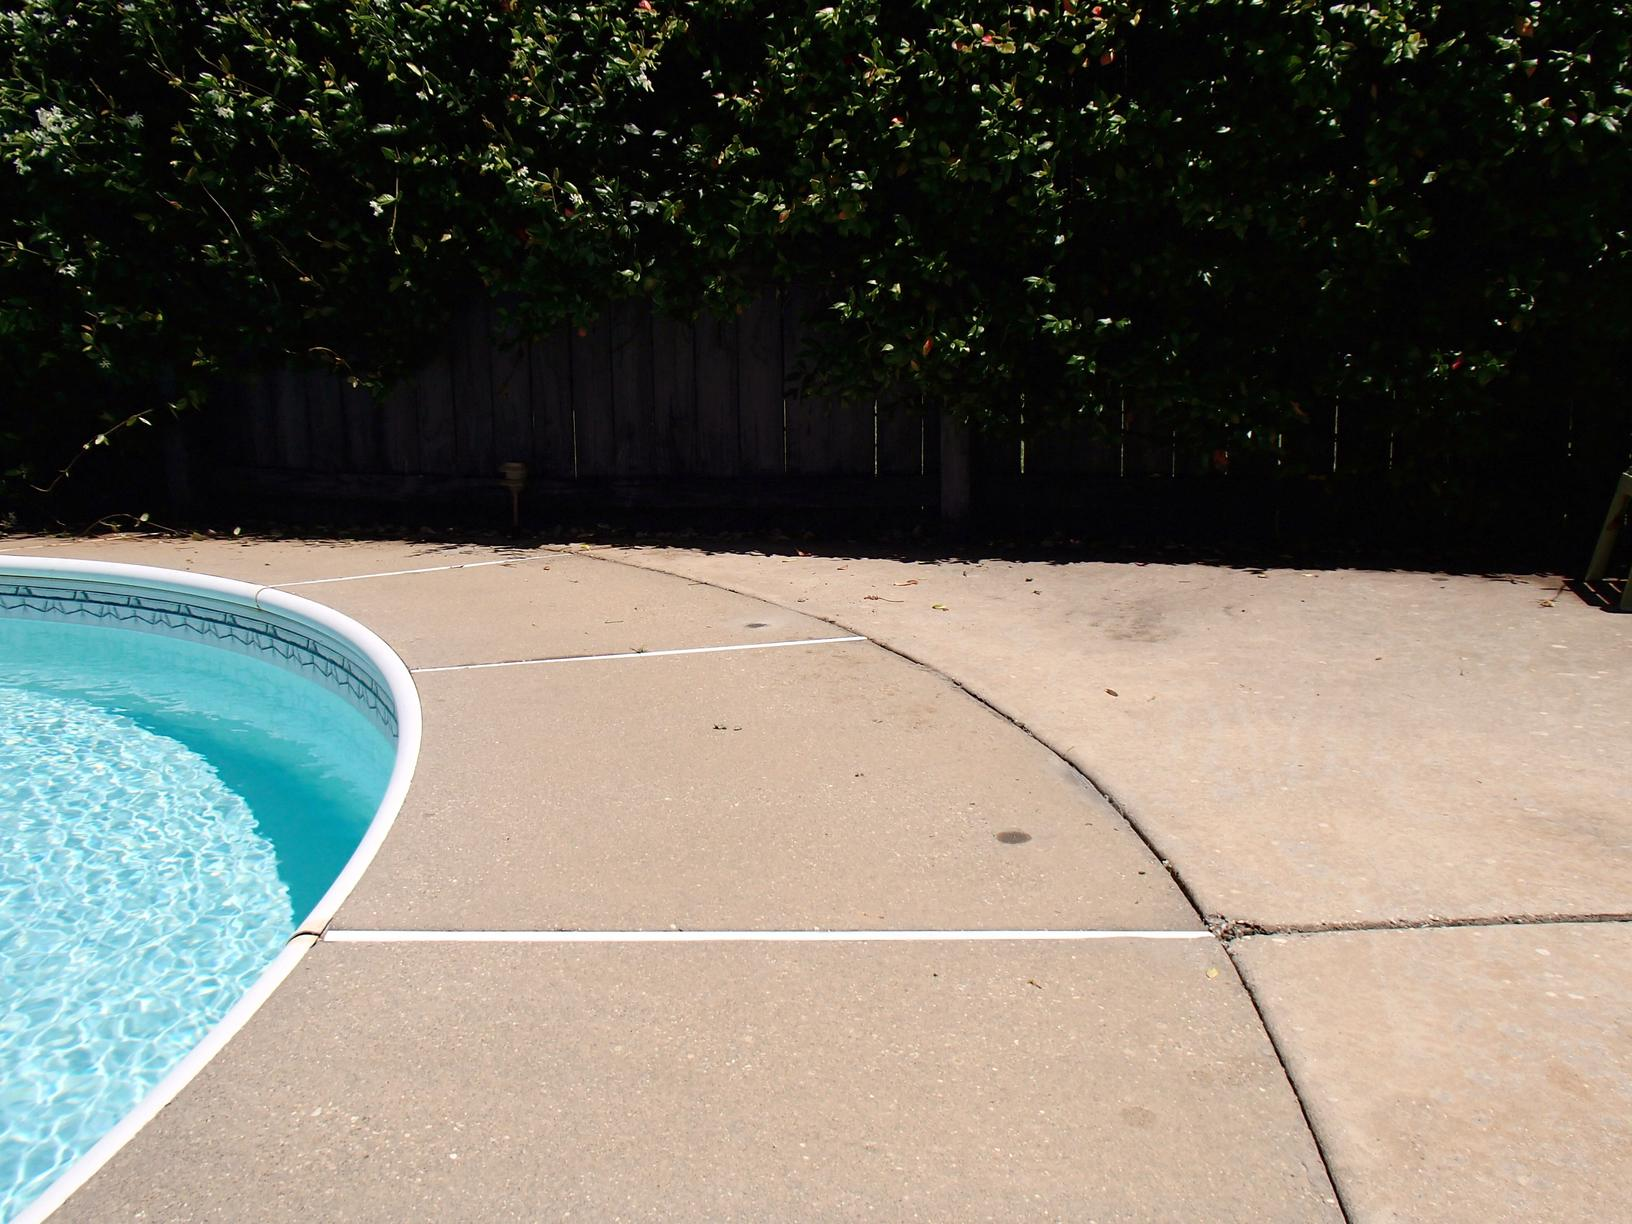 Pool Deck Lifted with PolyLevel - After Photo